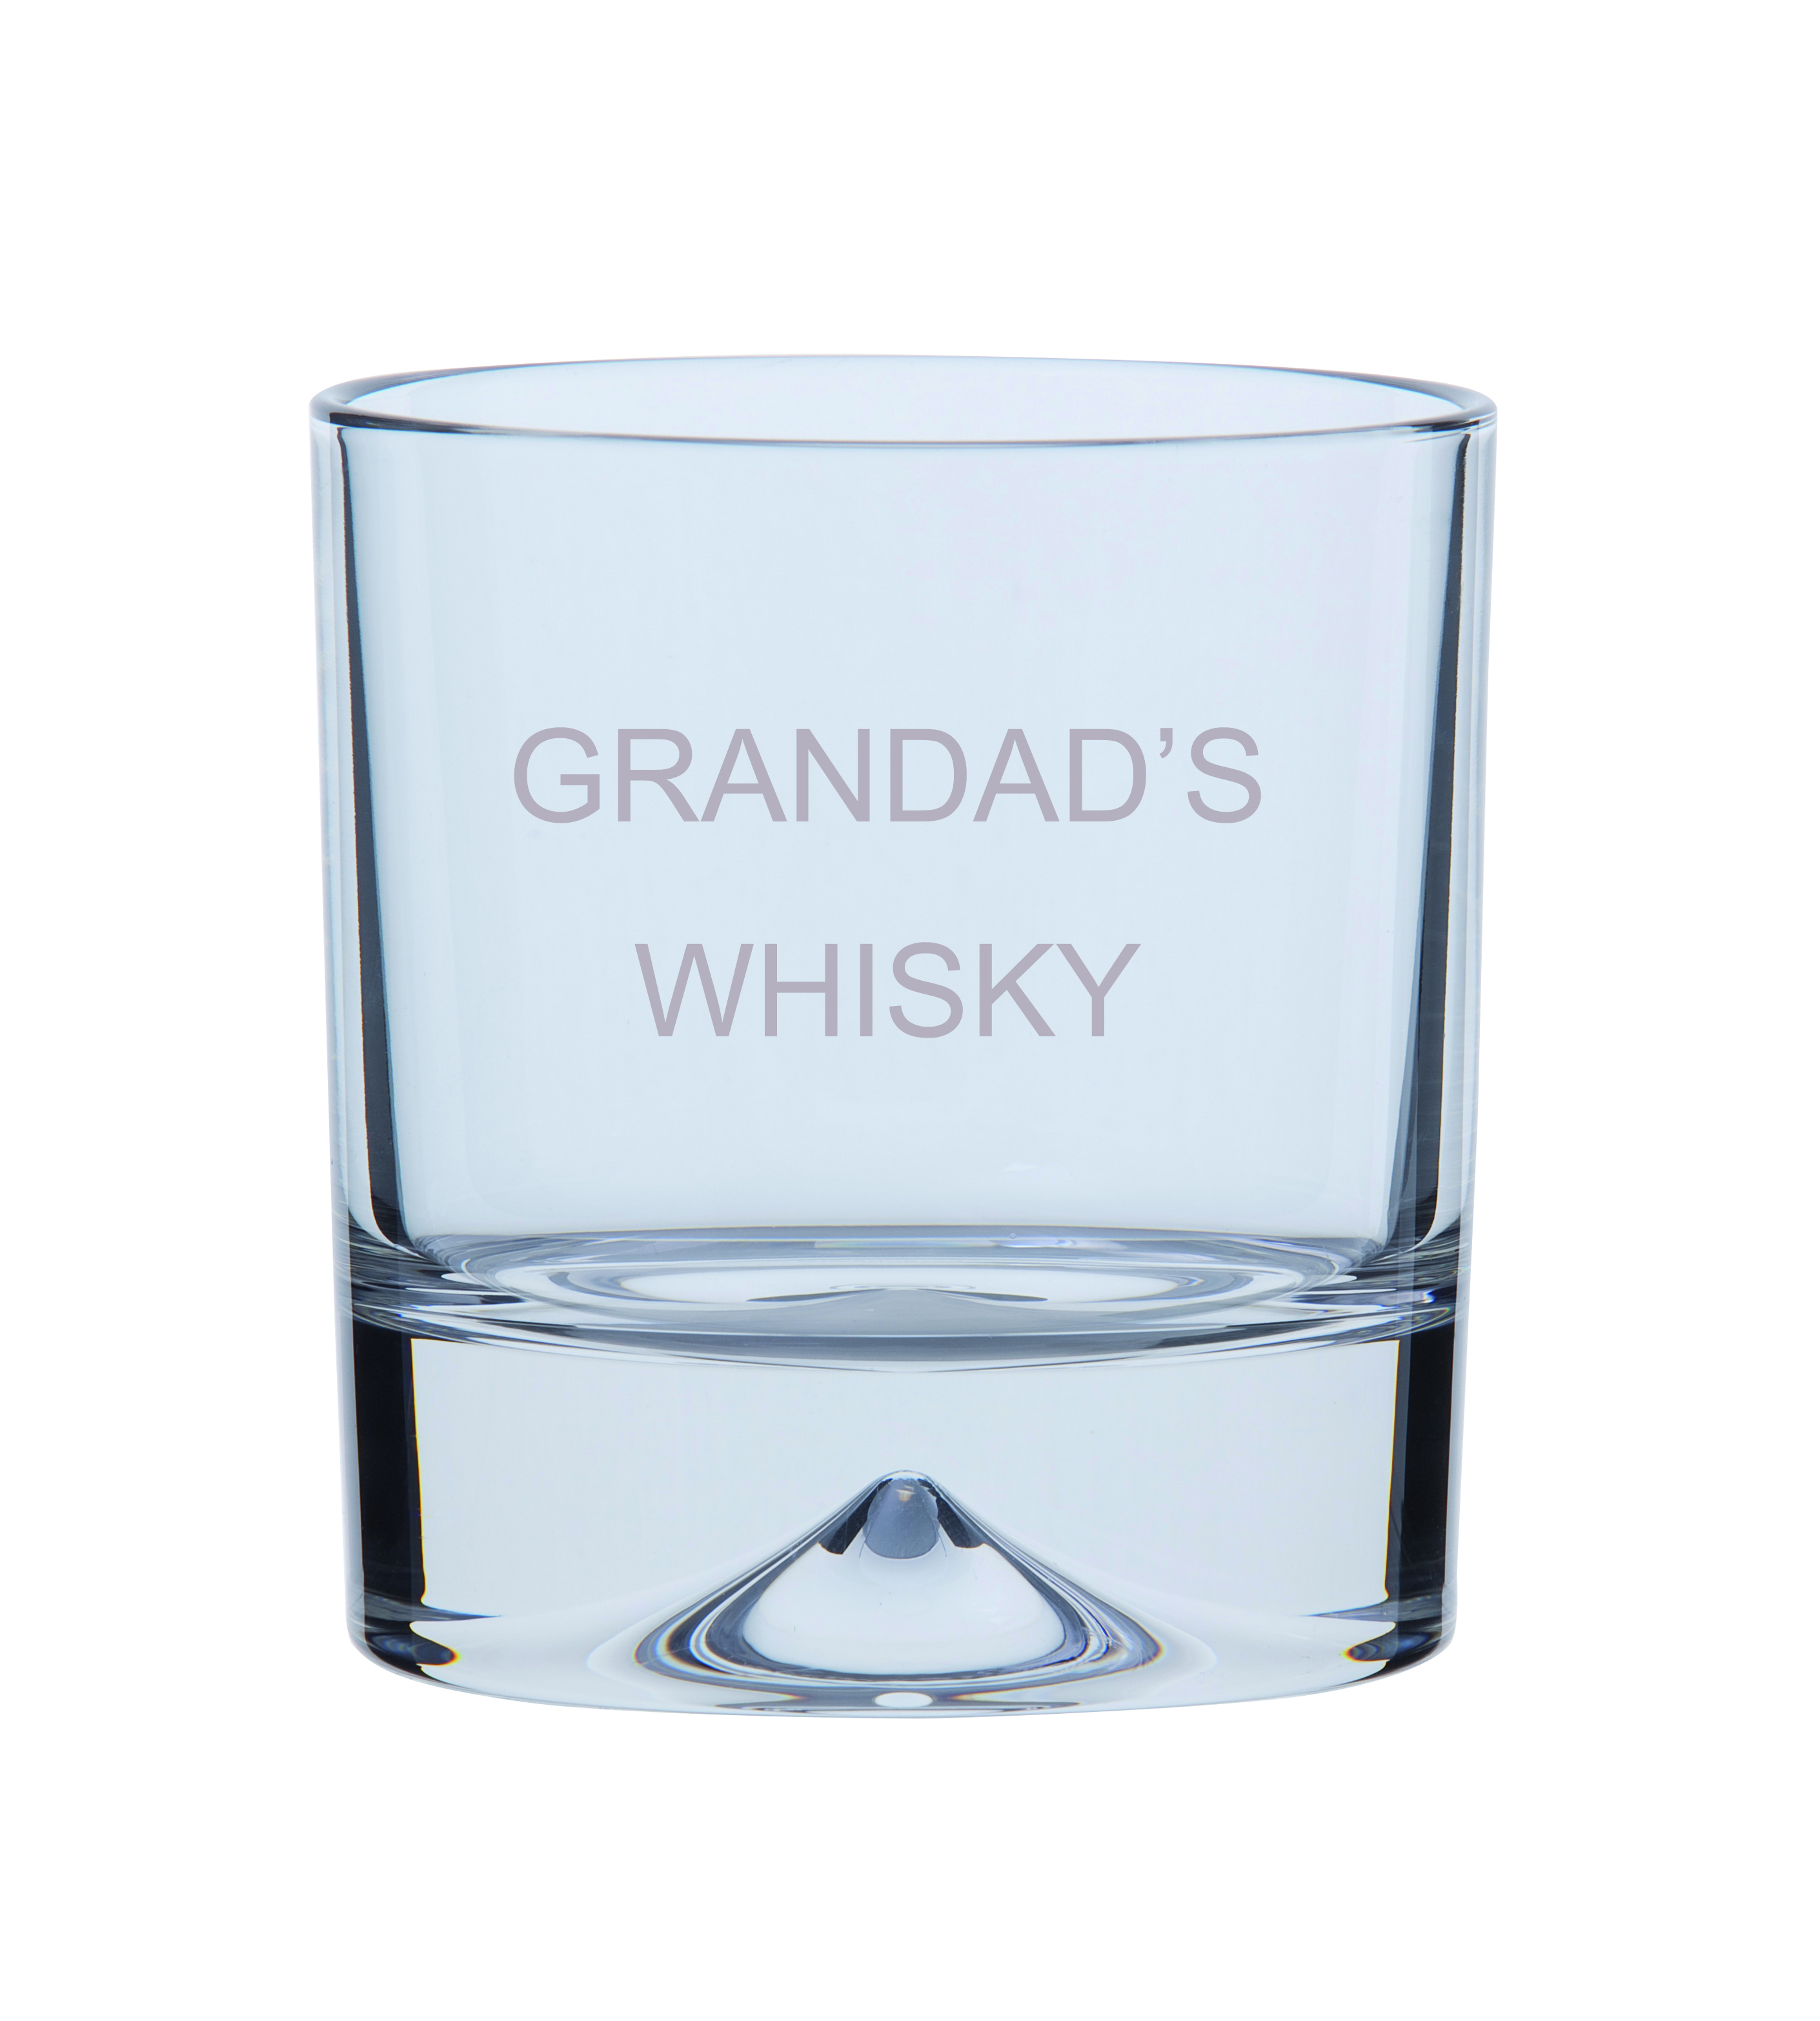 Dartington GRANDADS WHISKY  Single Dimple Double Old Fashioned Whisky Glass